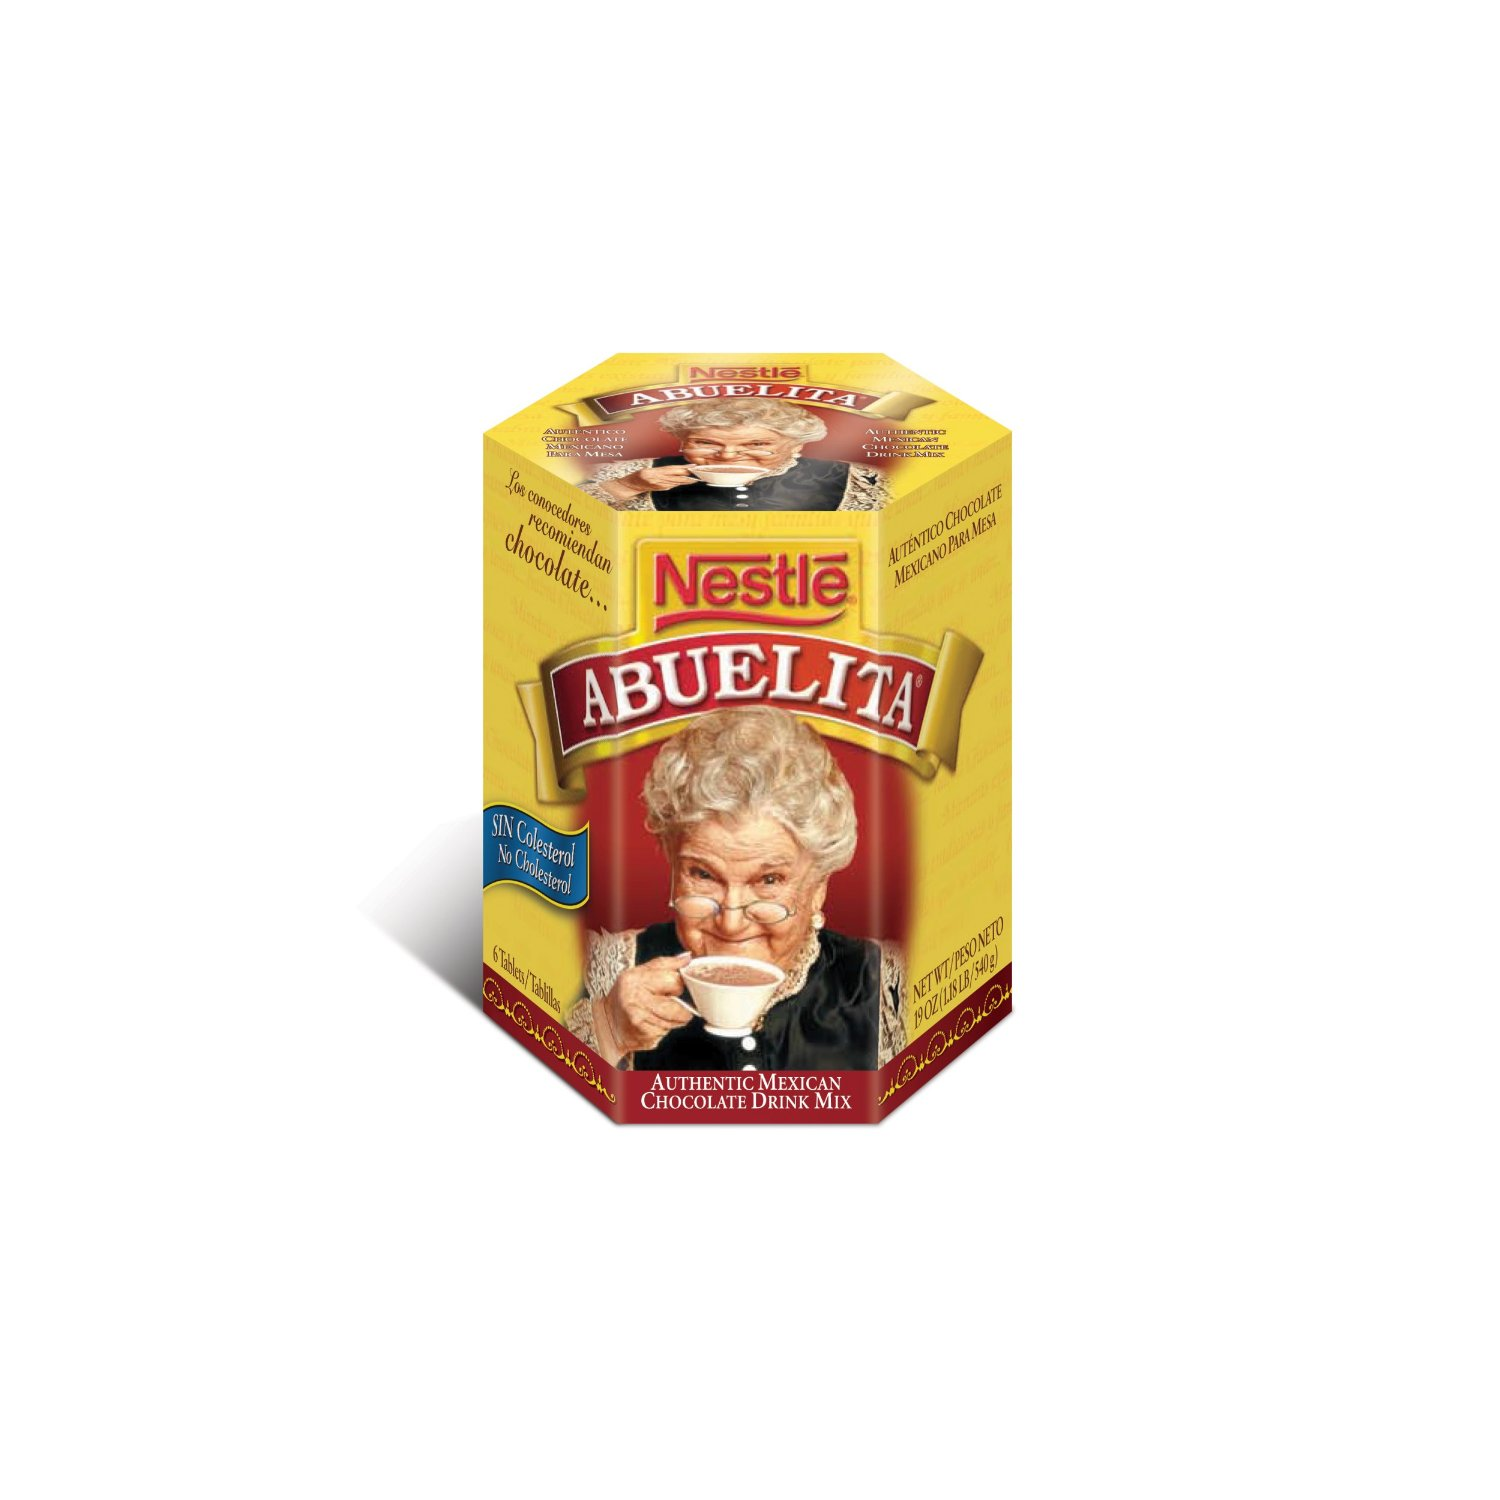 Nestlé Abuelita Hot Chocolate Review and Prize Pack Giveaway ...